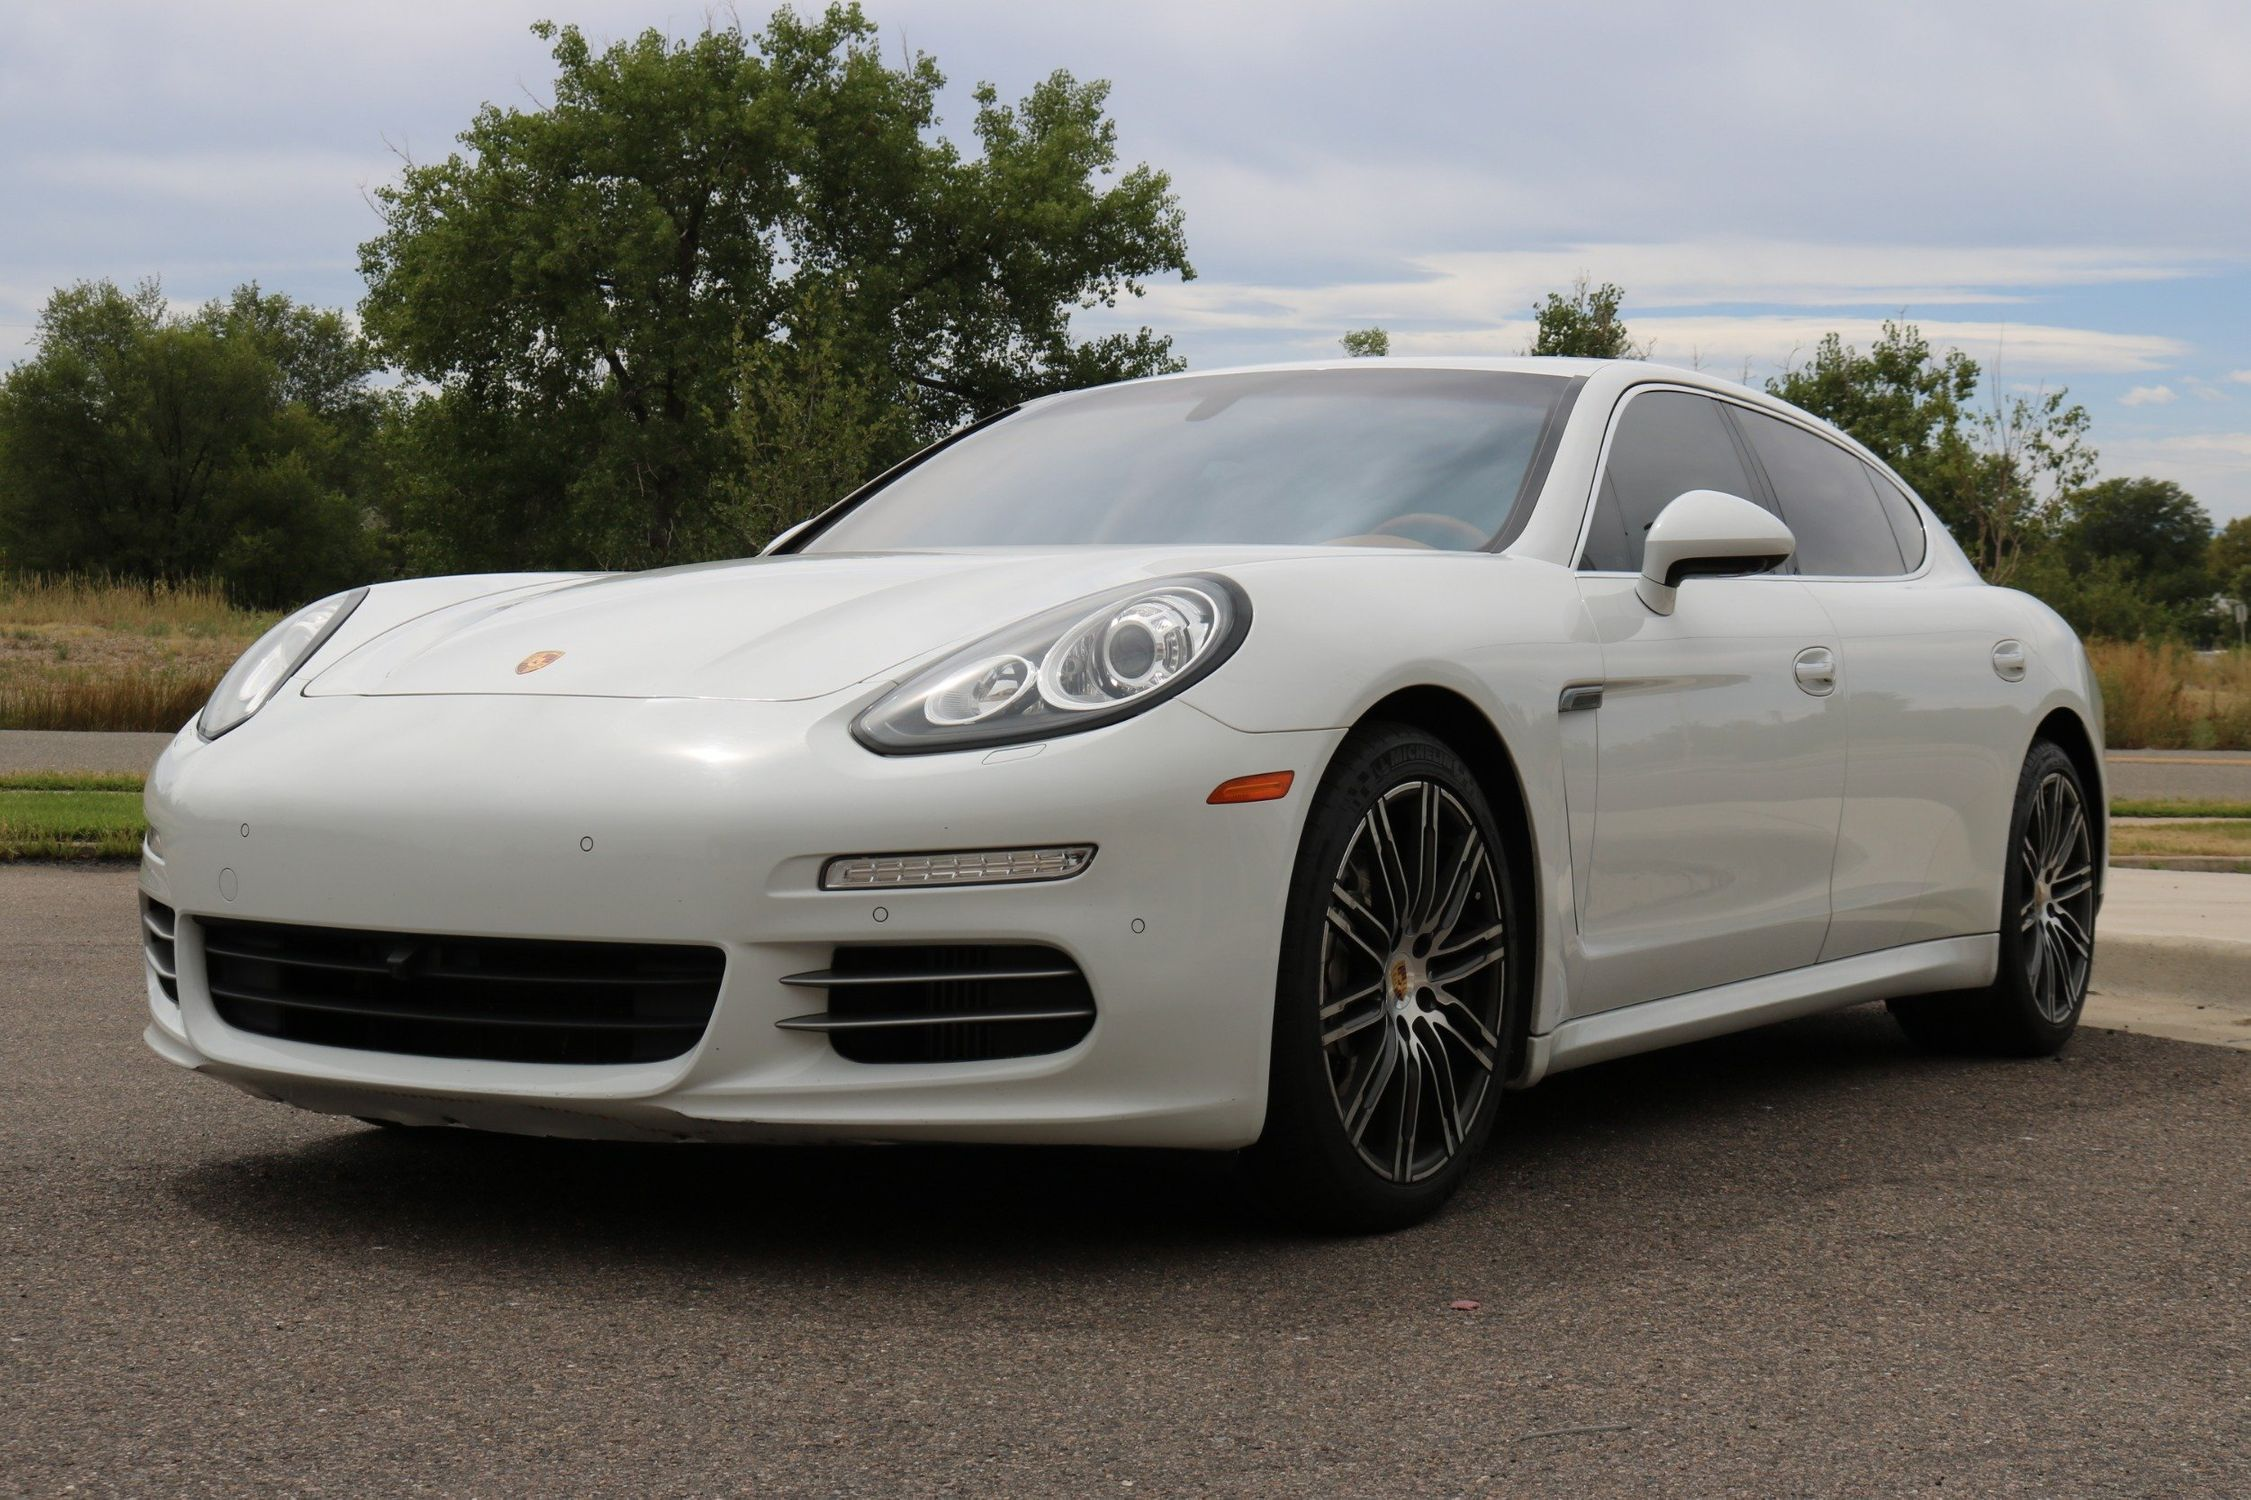 2014 Porsche Panamera 4s Executive Rocky Mountain Eurosport